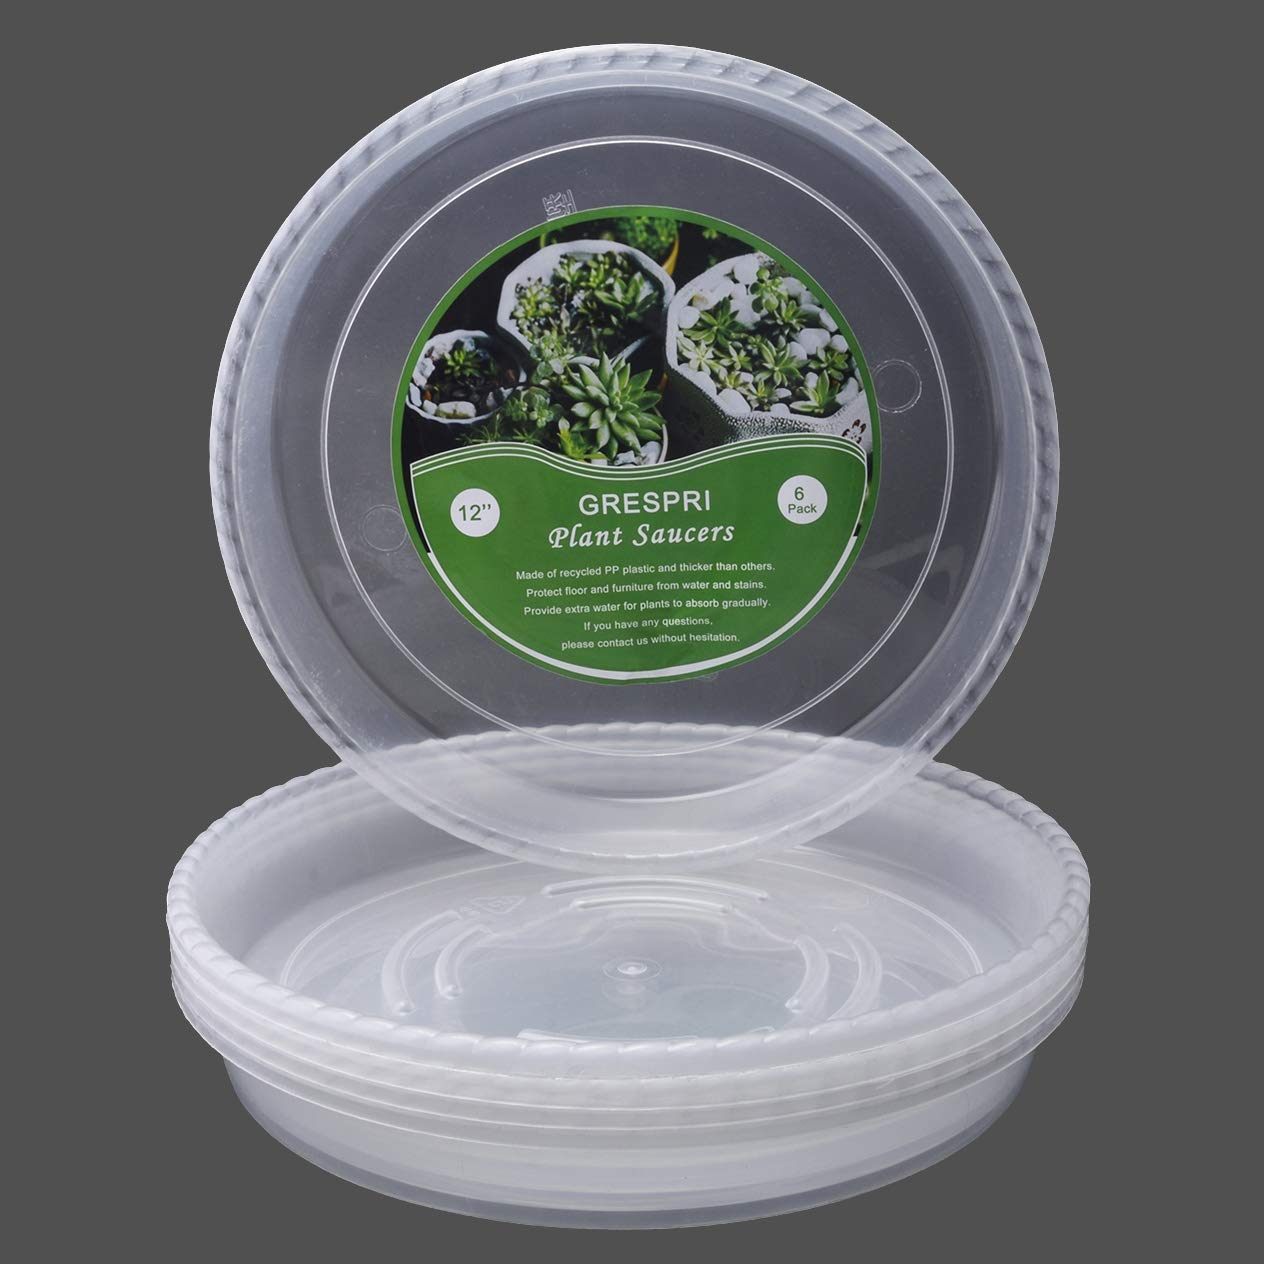 GRENSPRI Clear Plant Saucers in Thick Plastic 6 Packs of Flower Pot Saucers in 12 Inches Round Plant Tray Waterproof for Drips Recycle Indoor or Balcony (12 inches,6packs)